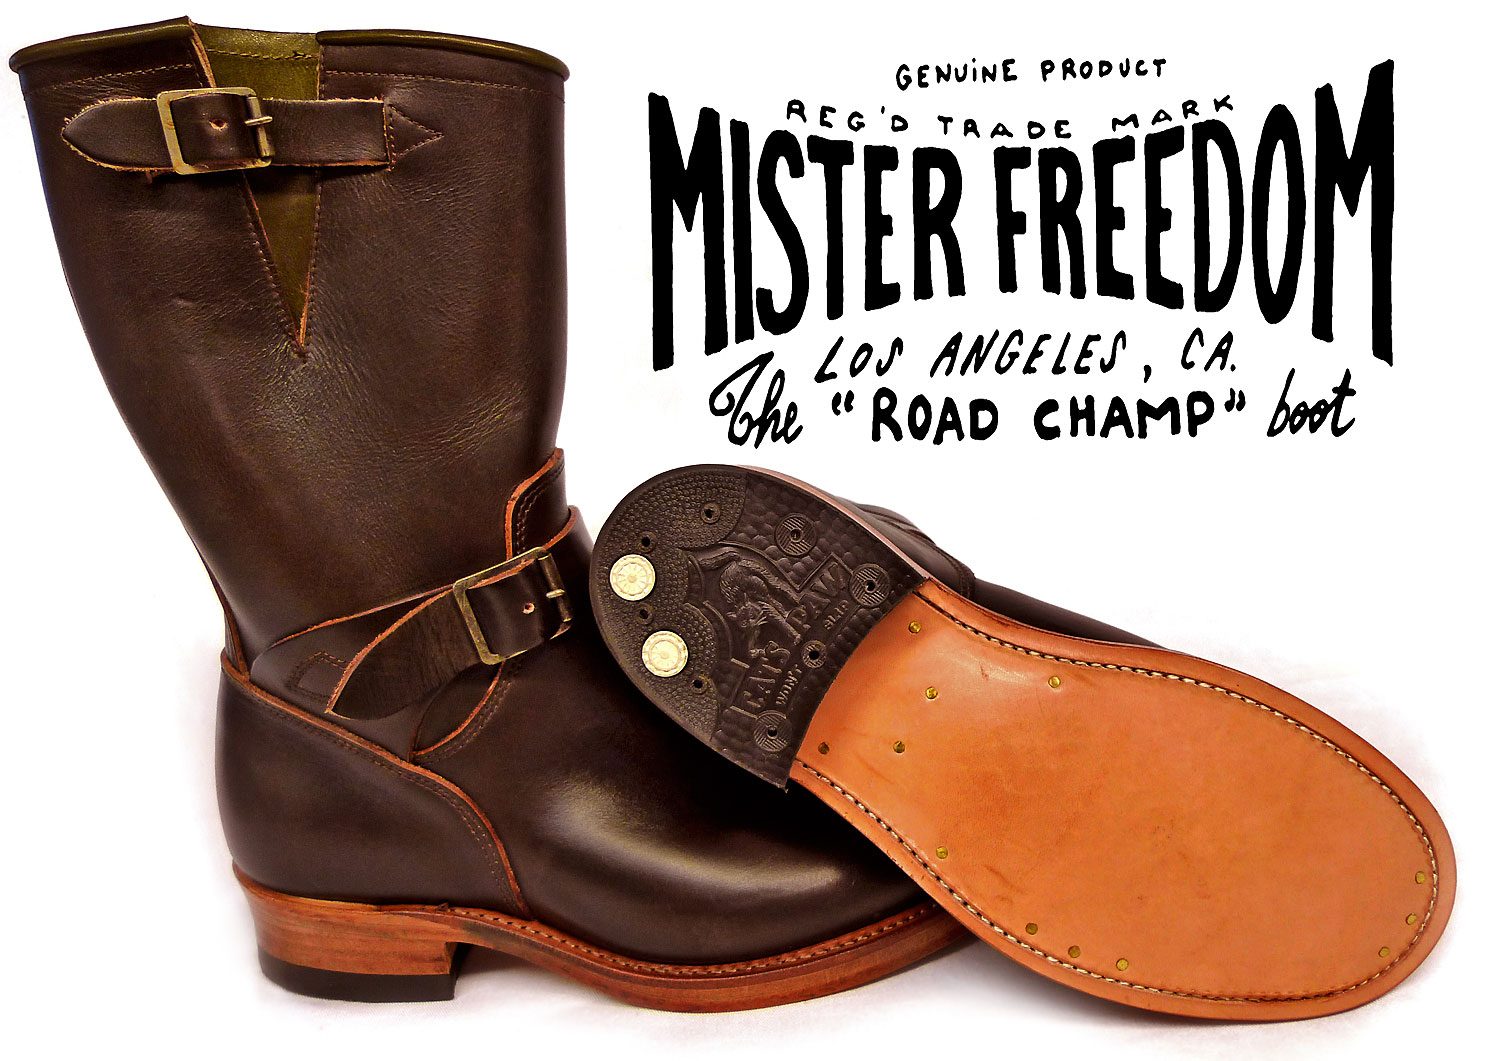 MF® Road Champ Motor-cycle Boots Mister Freedom® ©2008